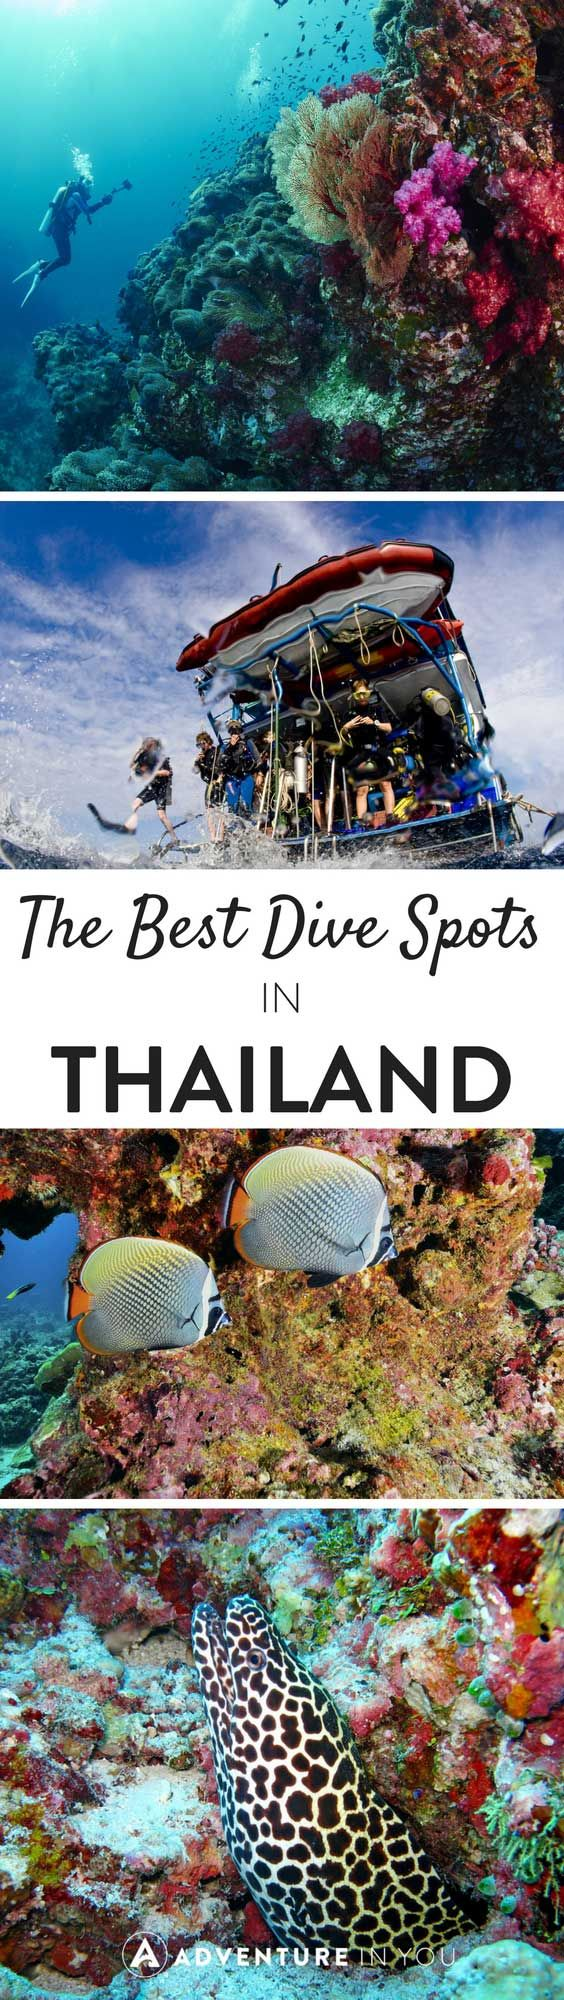 Best Scuba Diving in Thailand, Paradise, Snorkel, Dive, Tropical Destination, Ocean, Coral Reef, Fish, Sea, Beach, Aquatic, Bucket List Trips, Family Vacation, Honeymoon, Getaway, Asia, Holiday, Break